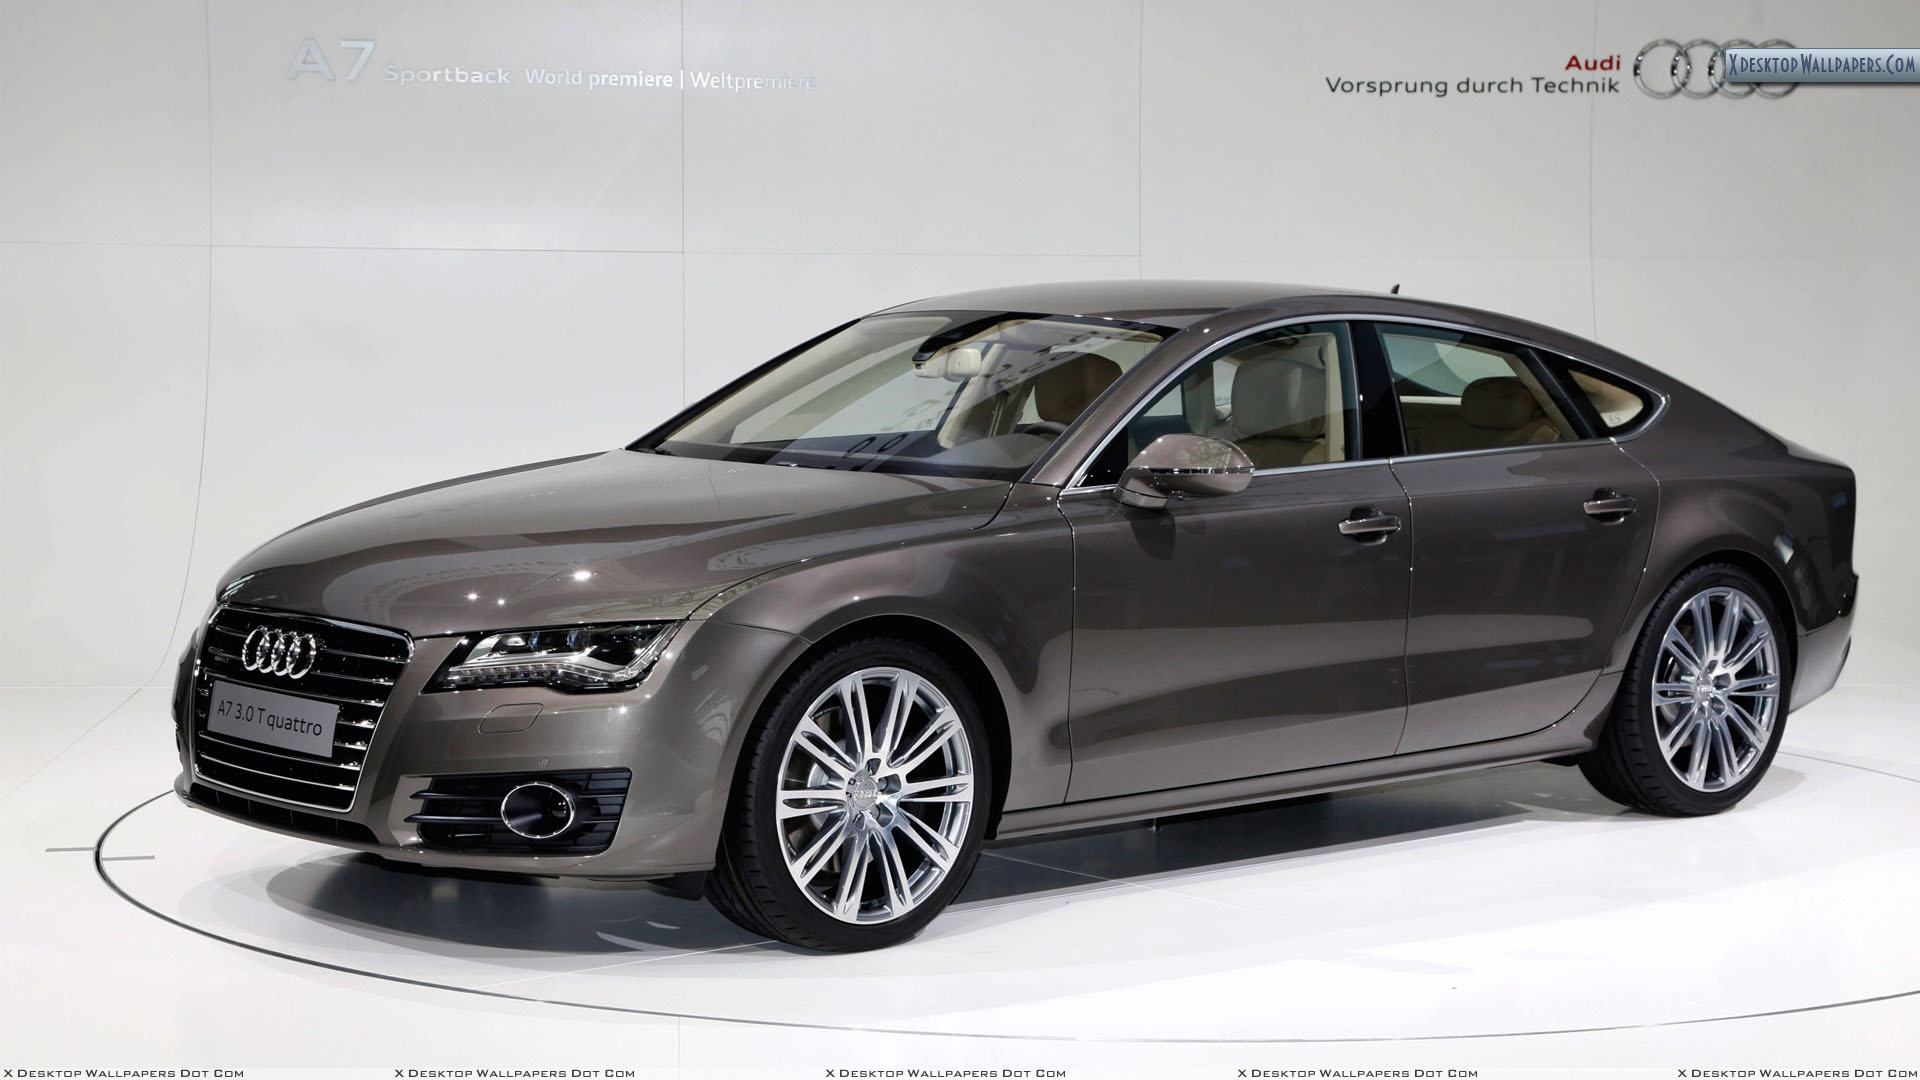 2011 audi a7 sportback side pose in brown wallpaper. Black Bedroom Furniture Sets. Home Design Ideas